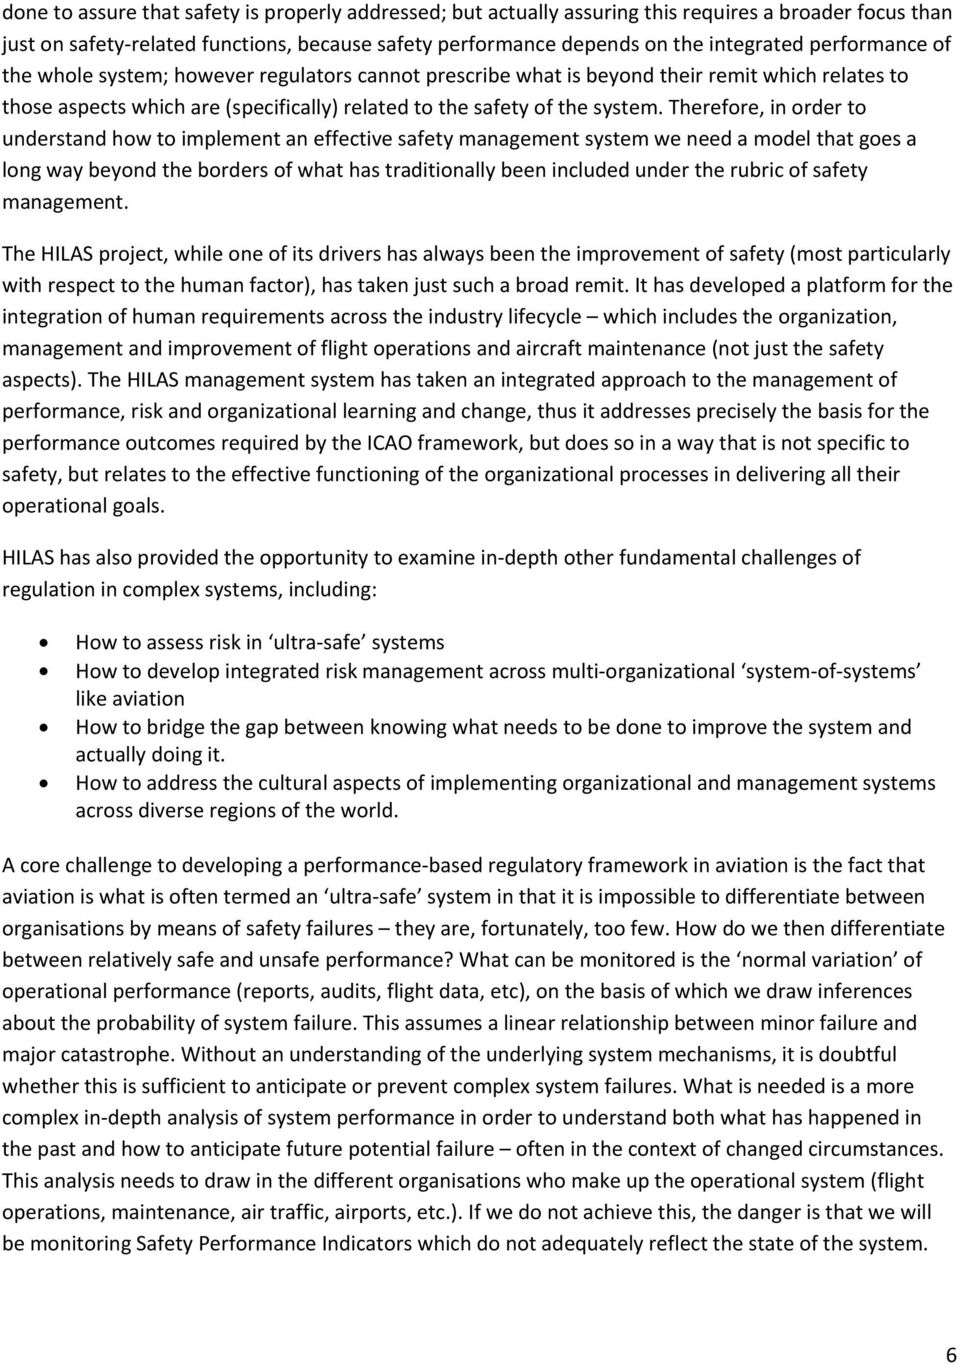 Therefore, in order to understand how to implement an effective safety management system we need a model that goes a long way beyond the borders of what has traditionally been included under the